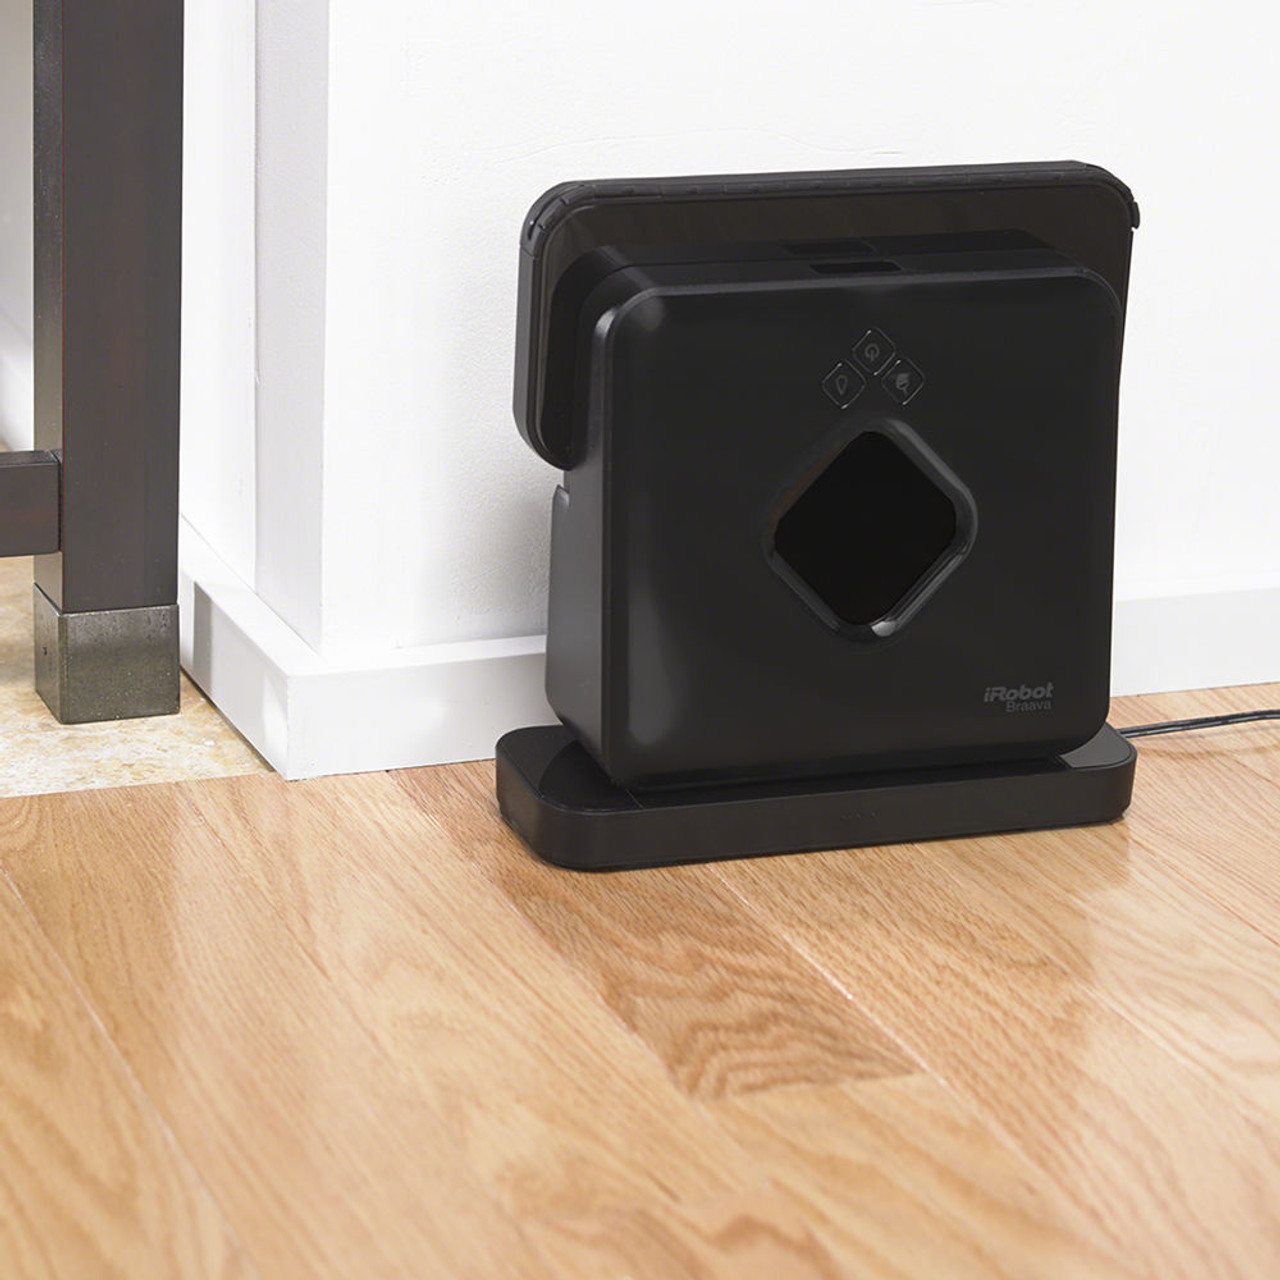 iRobot Braava® 380t Mopping Robot with NorthStar Navigation System & Damp Clean